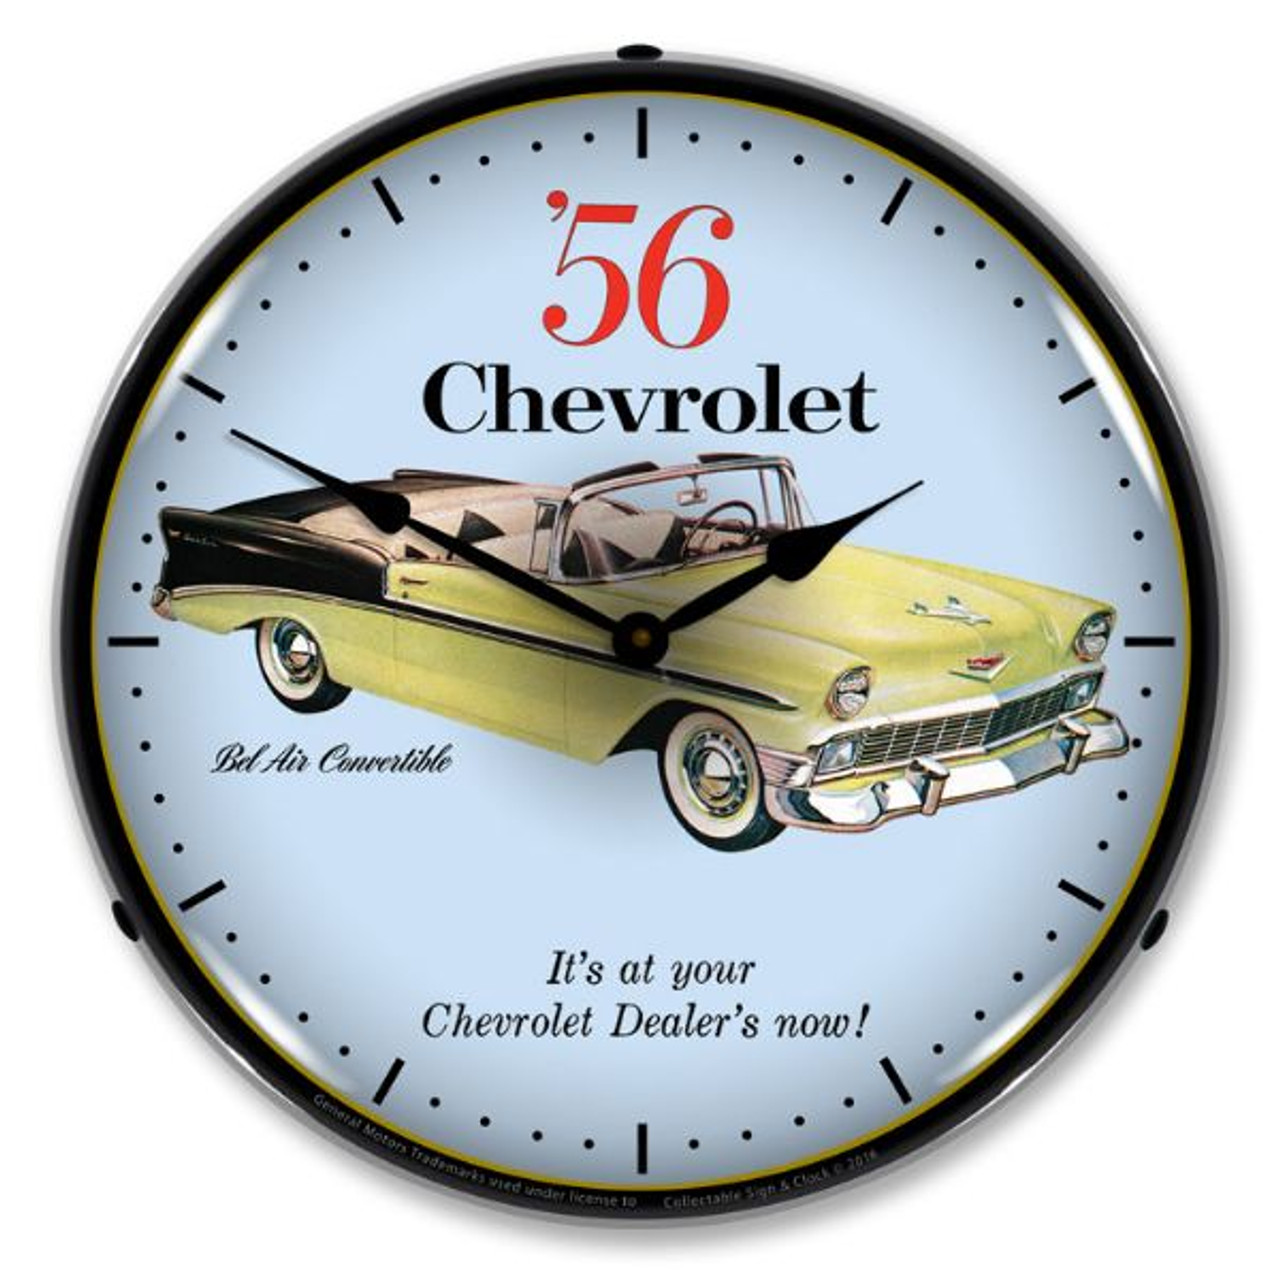 1956 Chevrolet Bel Air Convertible Lighted Wall Clock 14 x 14 Inches